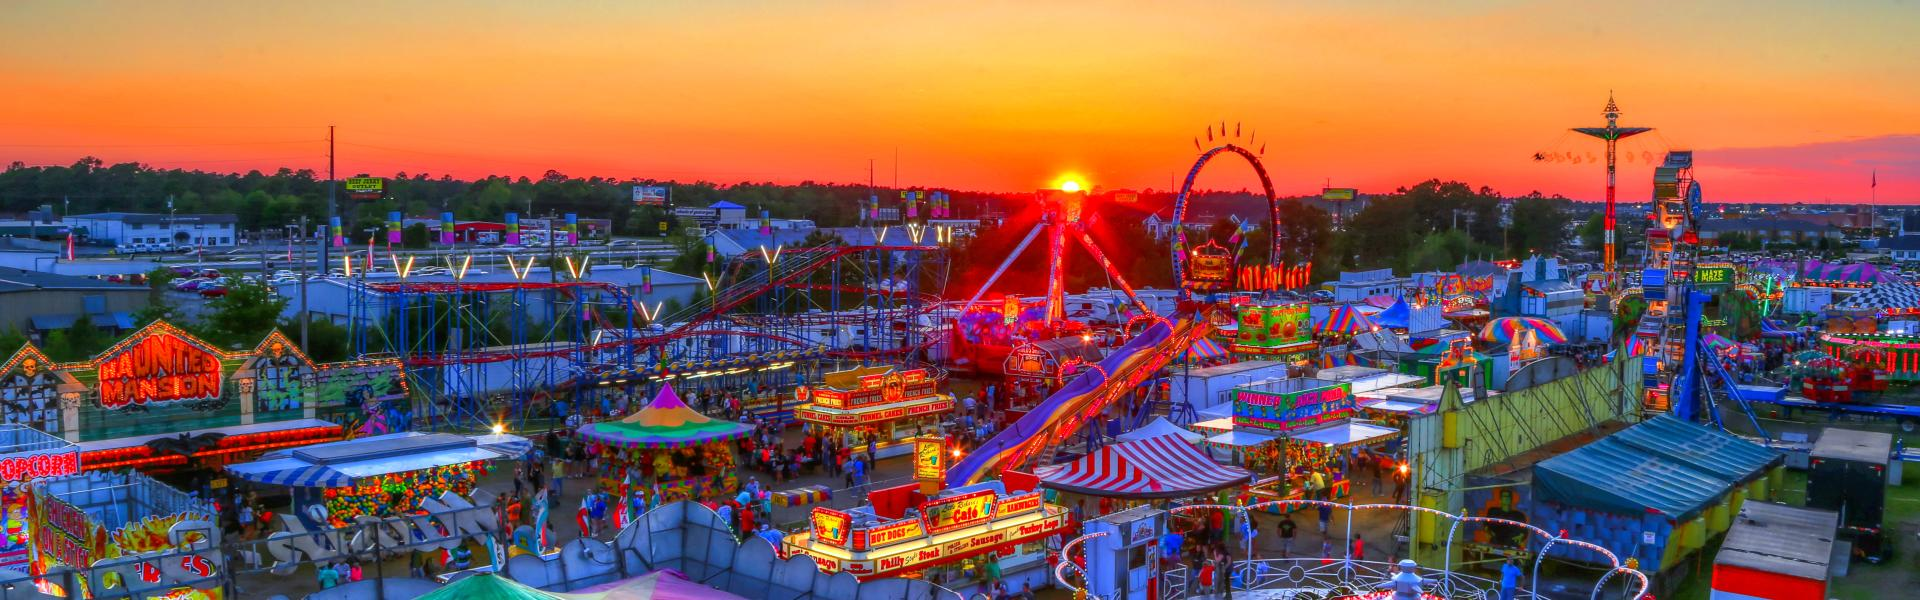 Myrtle Beach, SC 2020 Food Events and Festivals